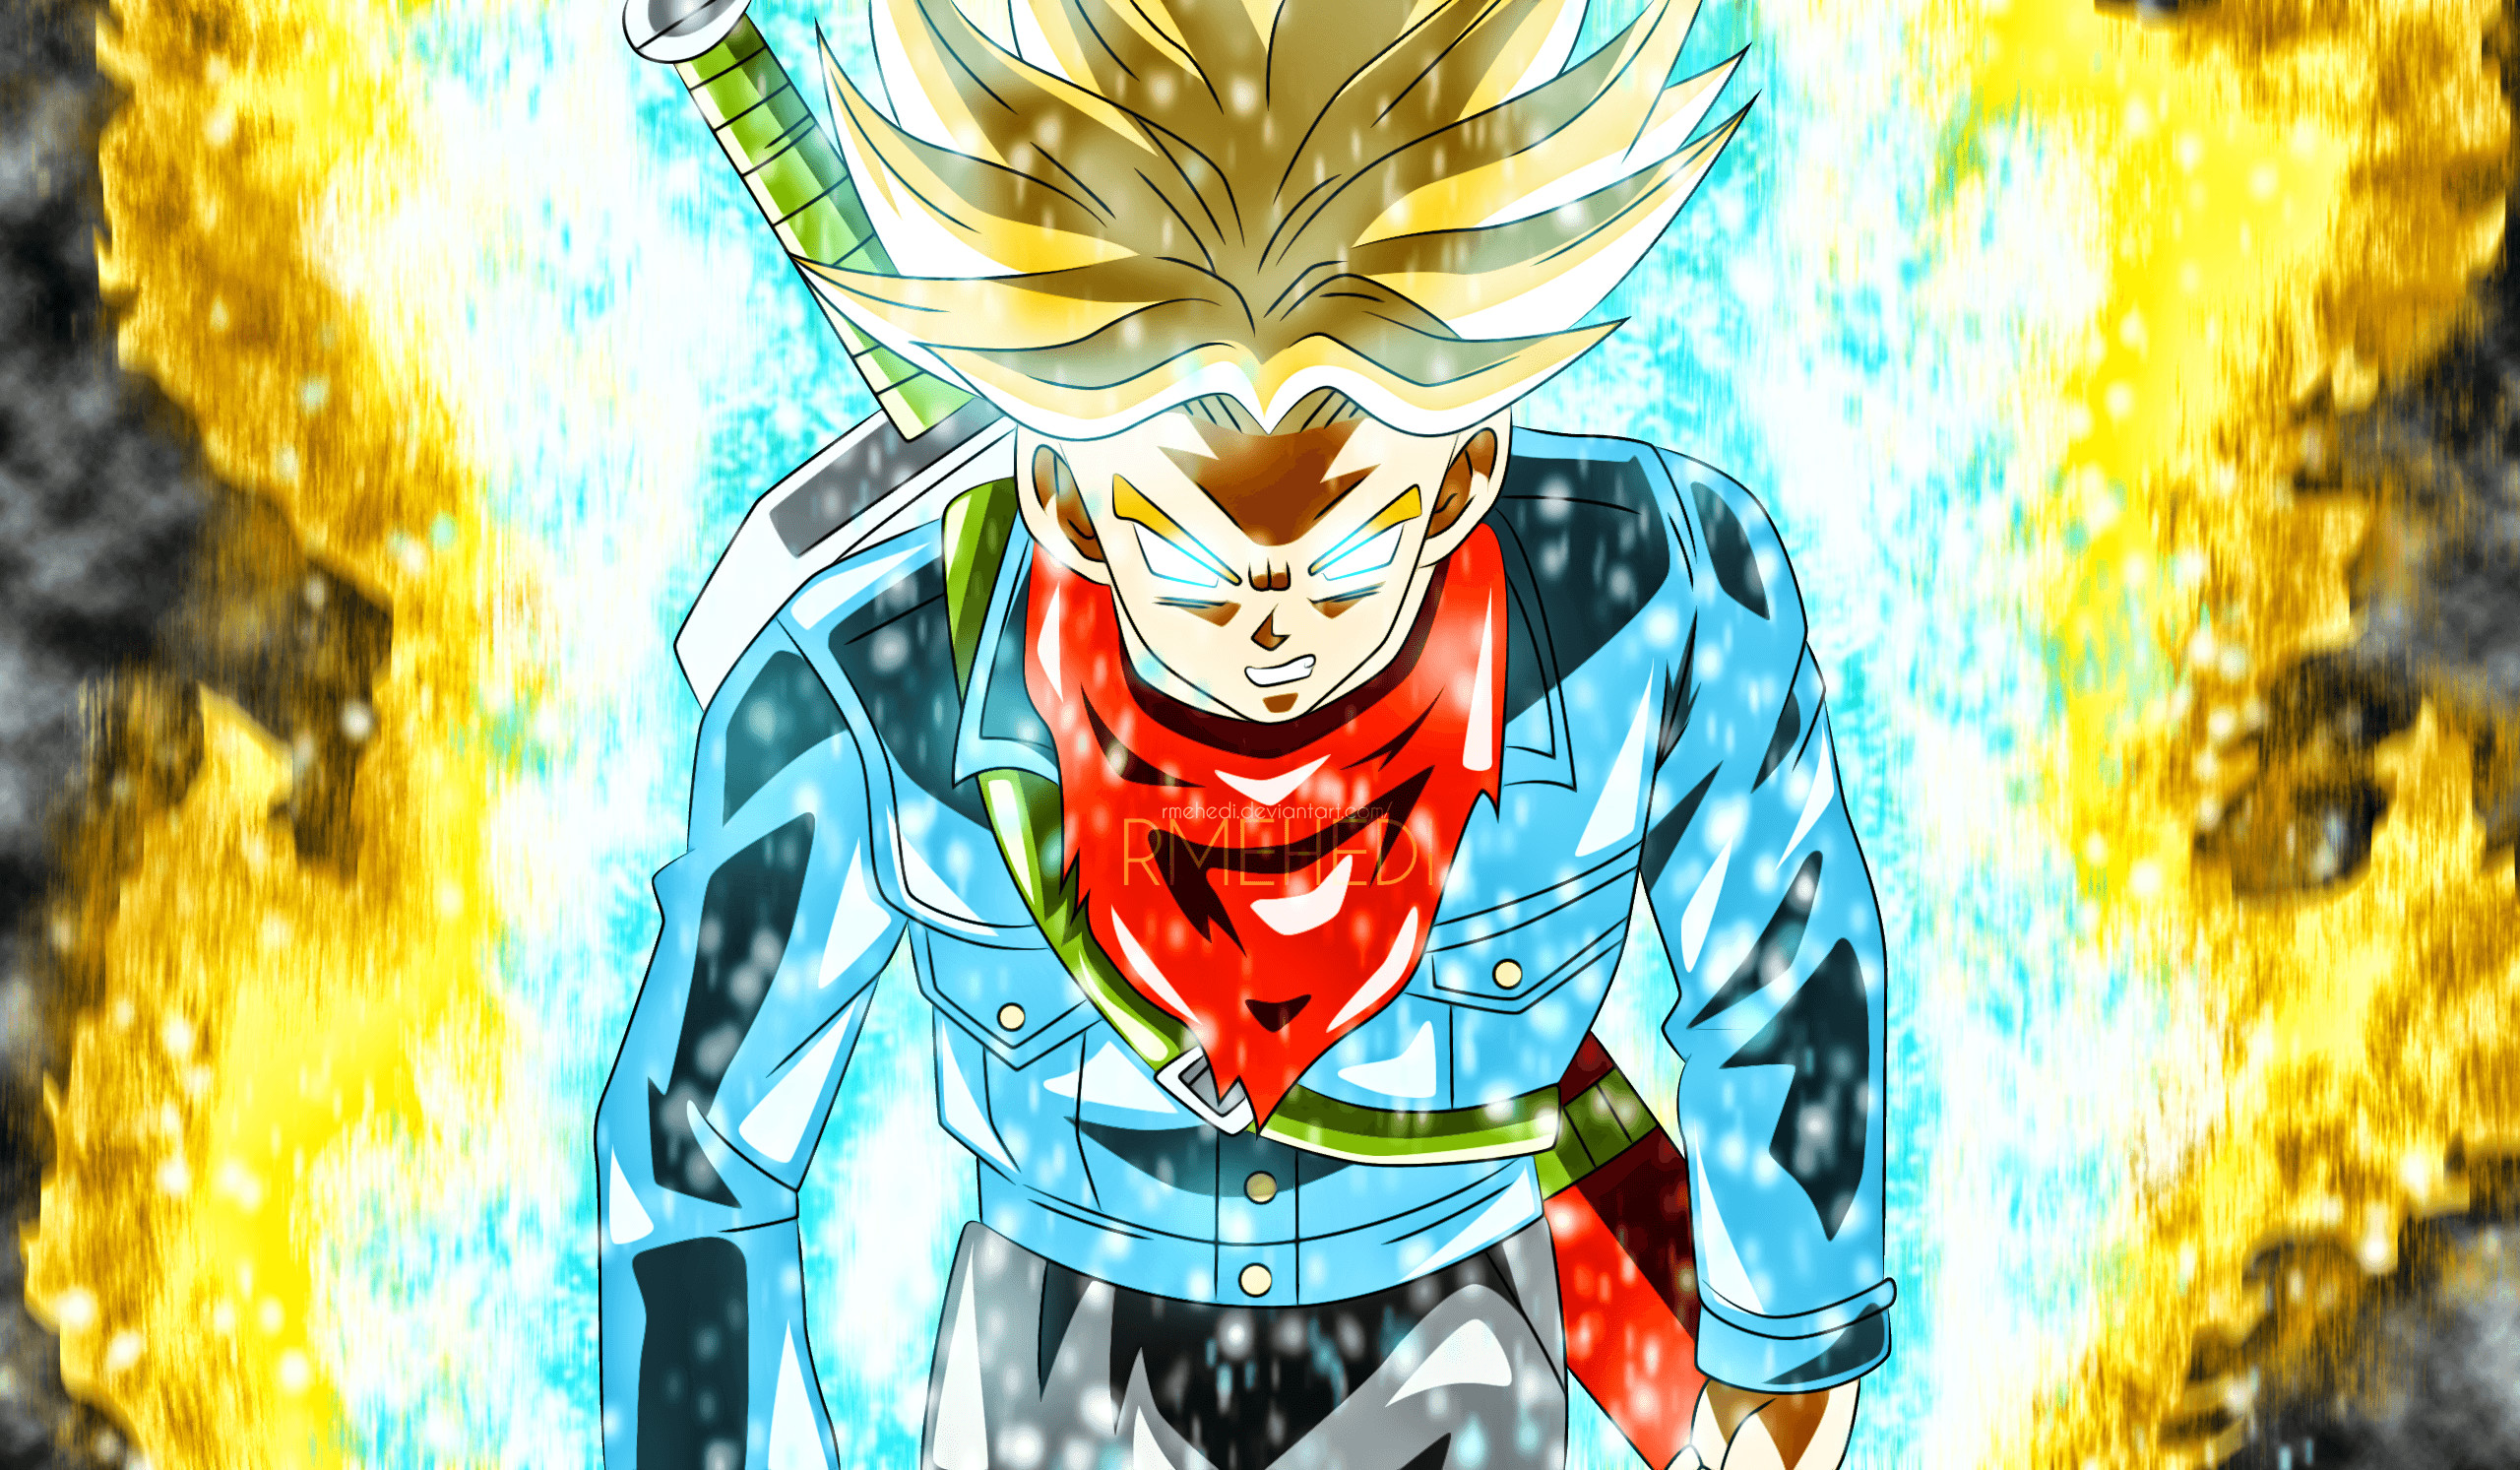 55 Trunks (Dragon Ball) HD Wallpapers | Backgrounds – Wallpaper Abyss